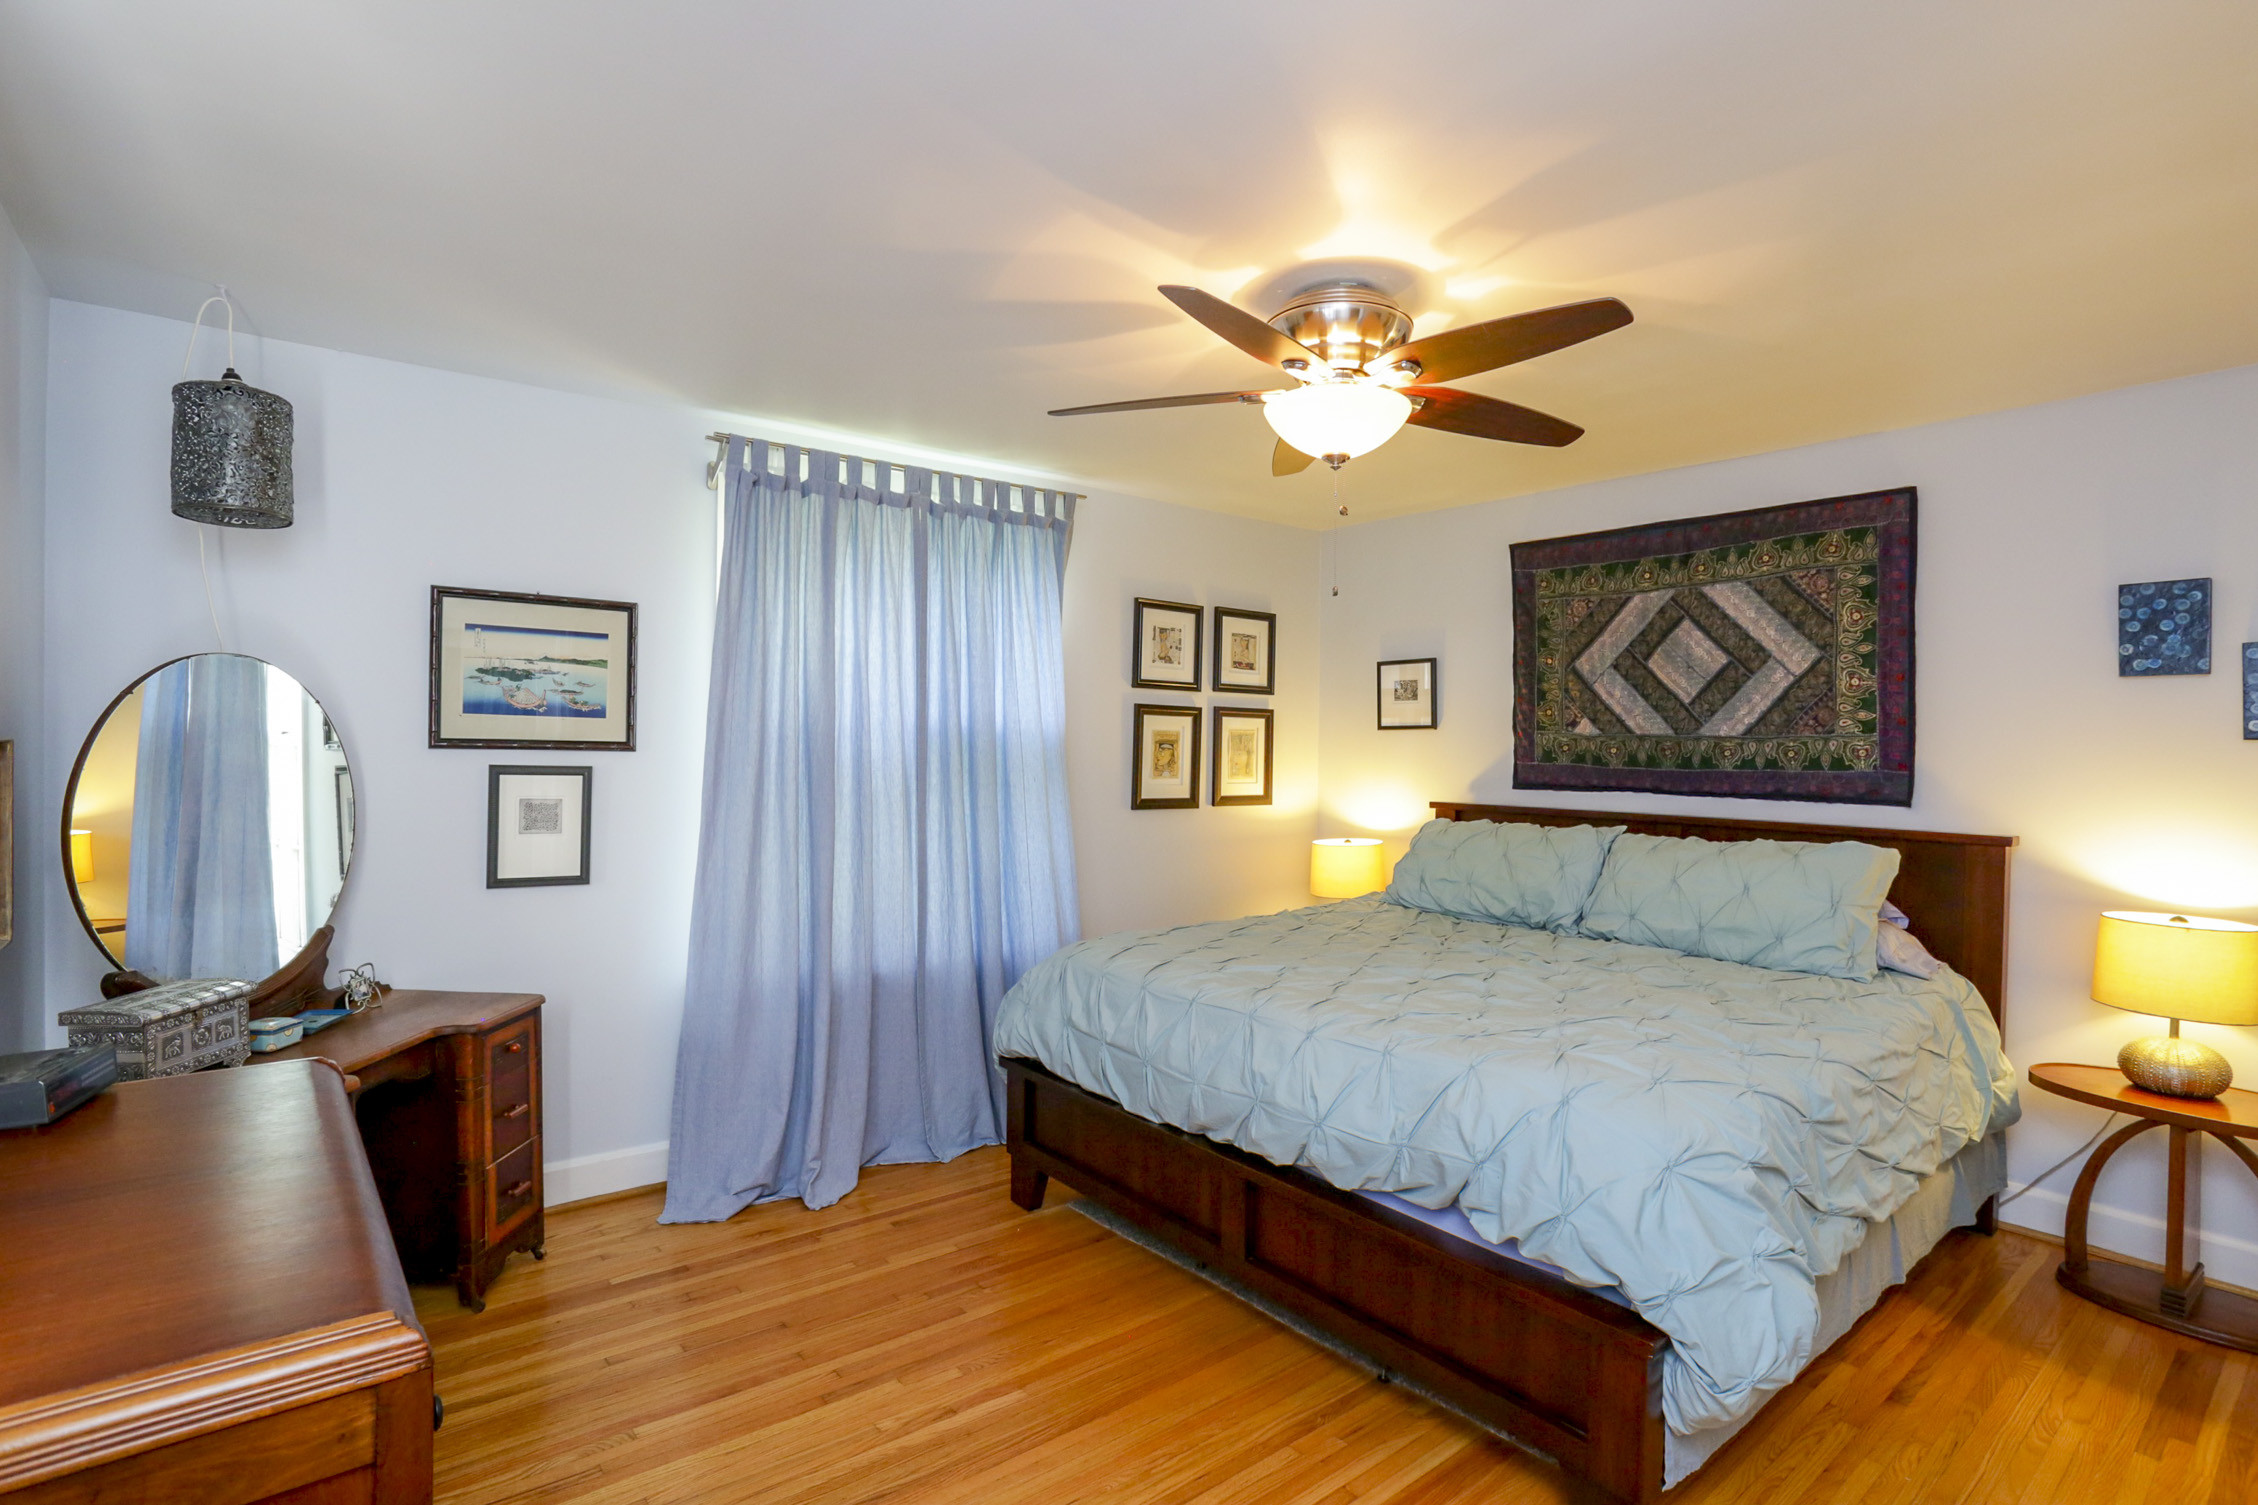 hardwood floor refinishing nashville of michelle froedge real estate team charming inglewood home in michelle froedge is a residential realtor and principal broker in the greater nashville and williamson county areas of tennessee mom to four legged fur